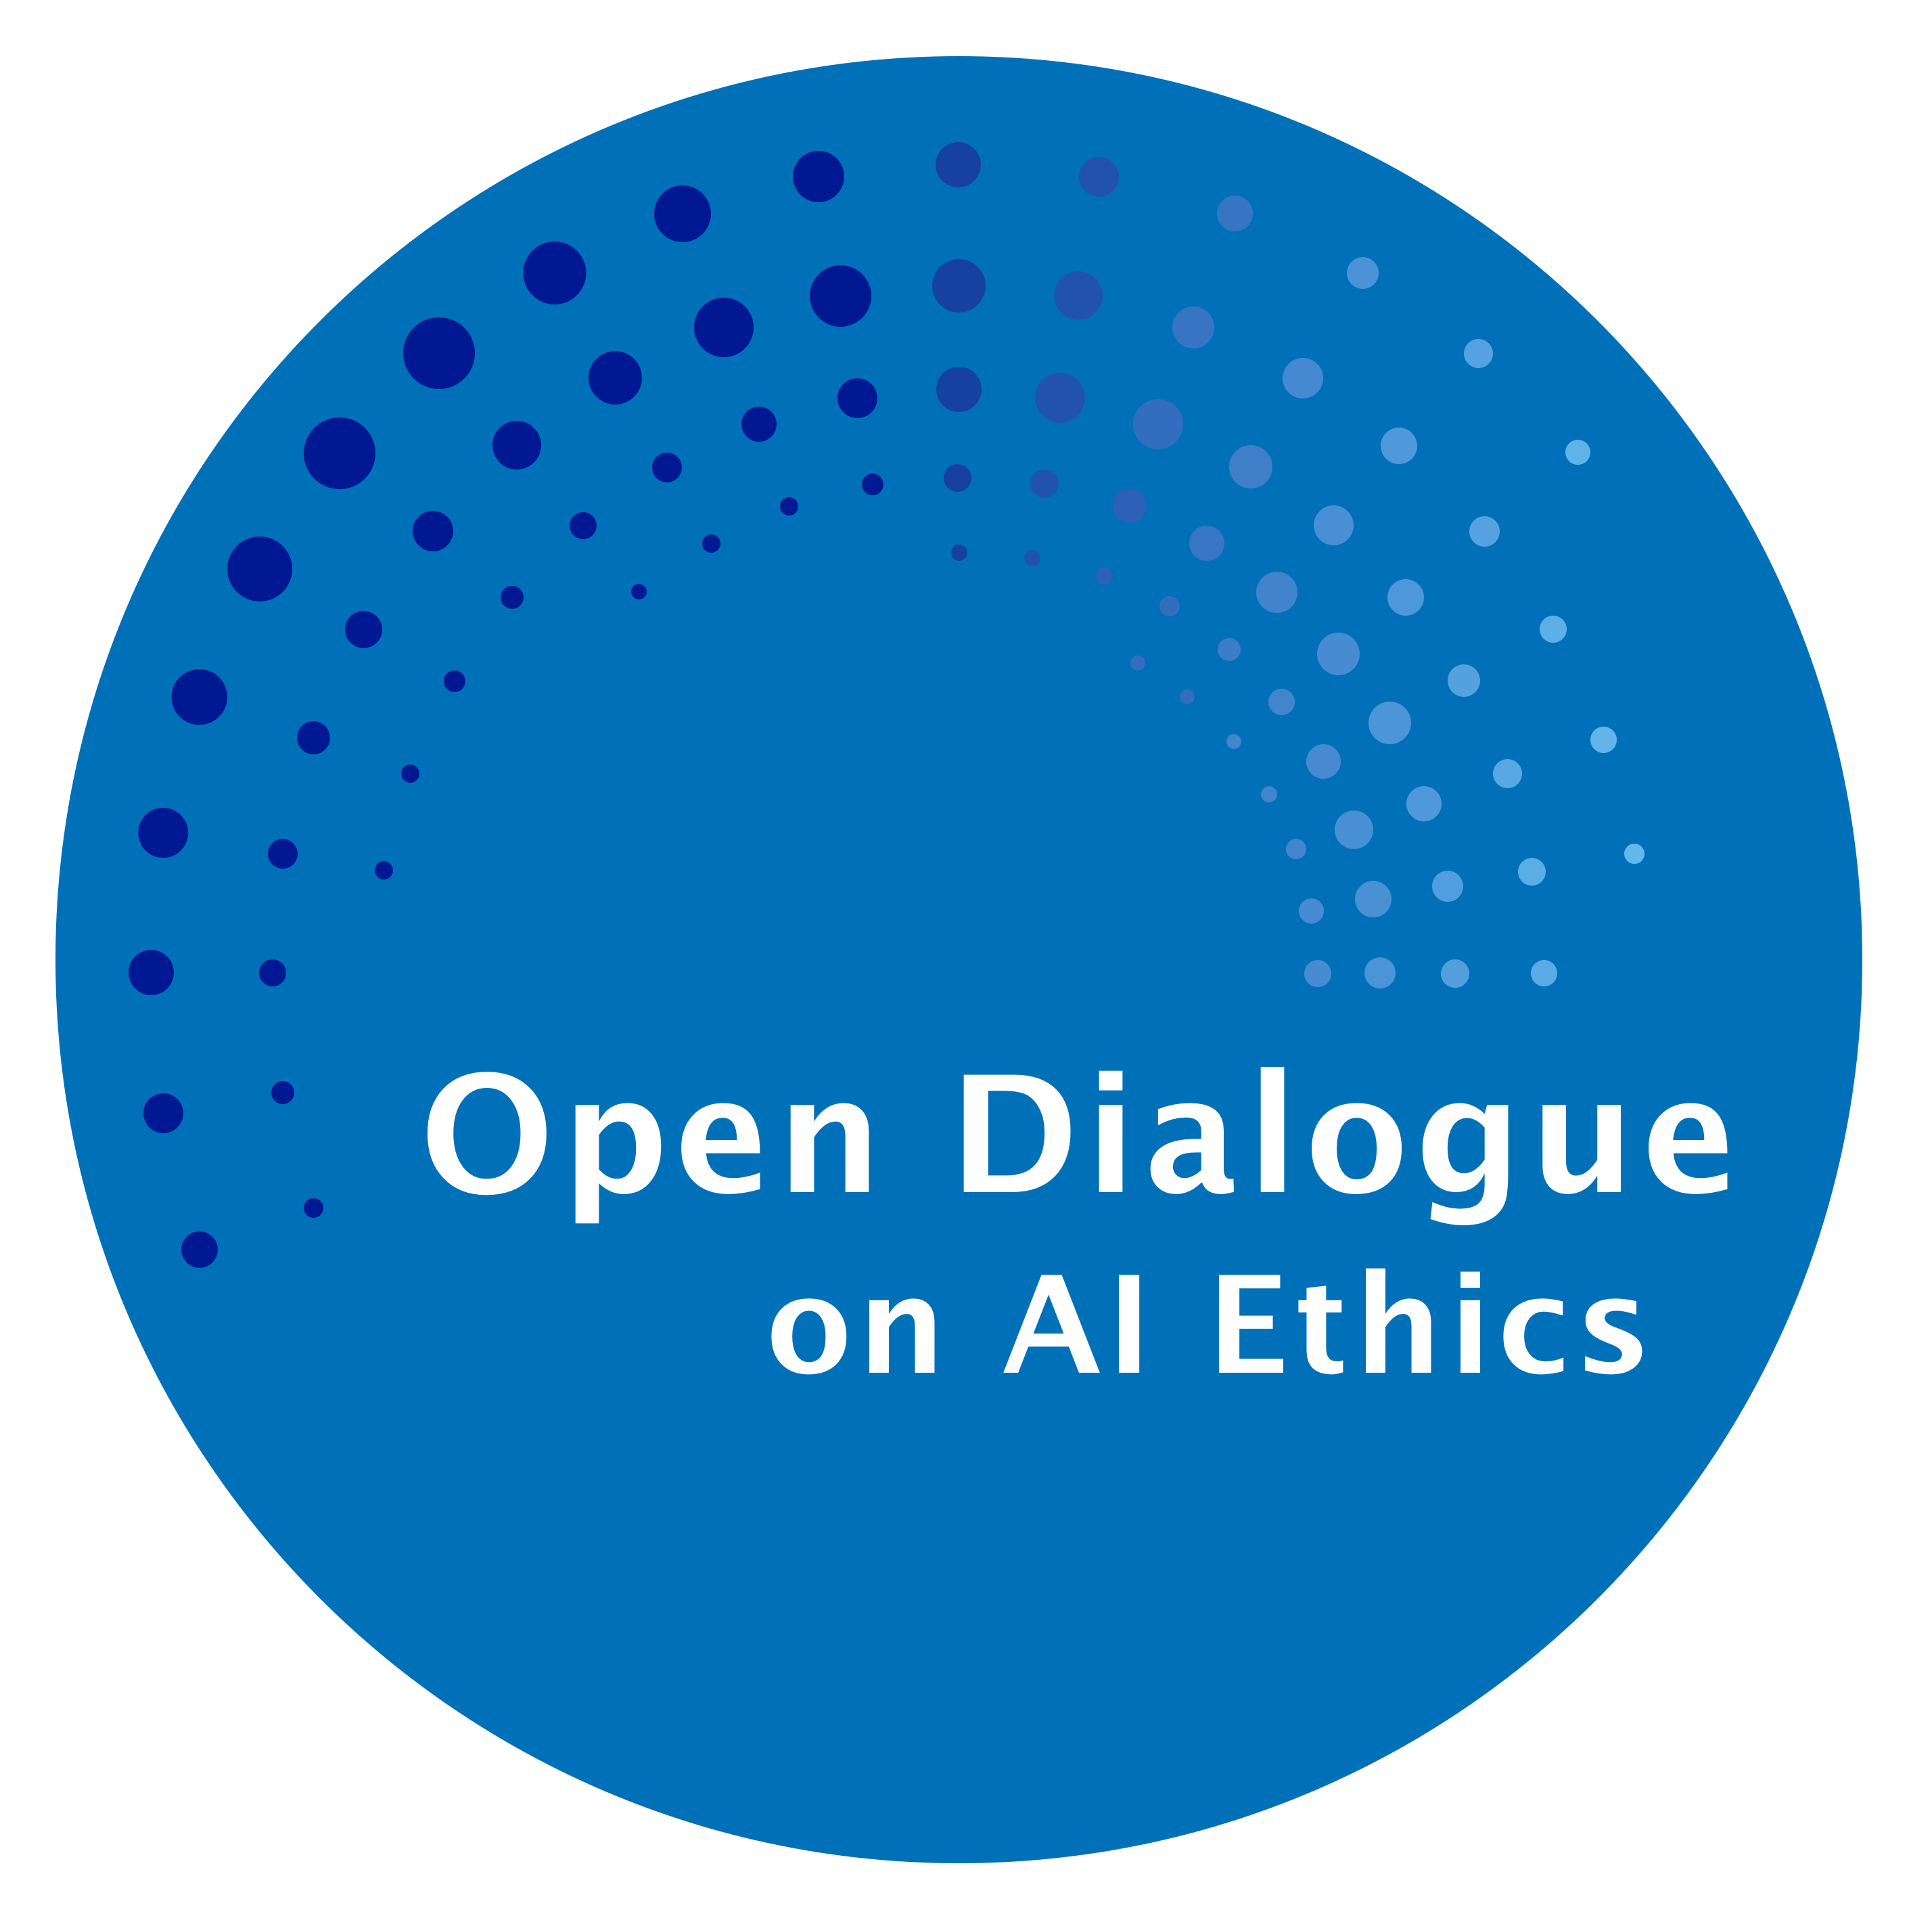 Open Dialogue On AI